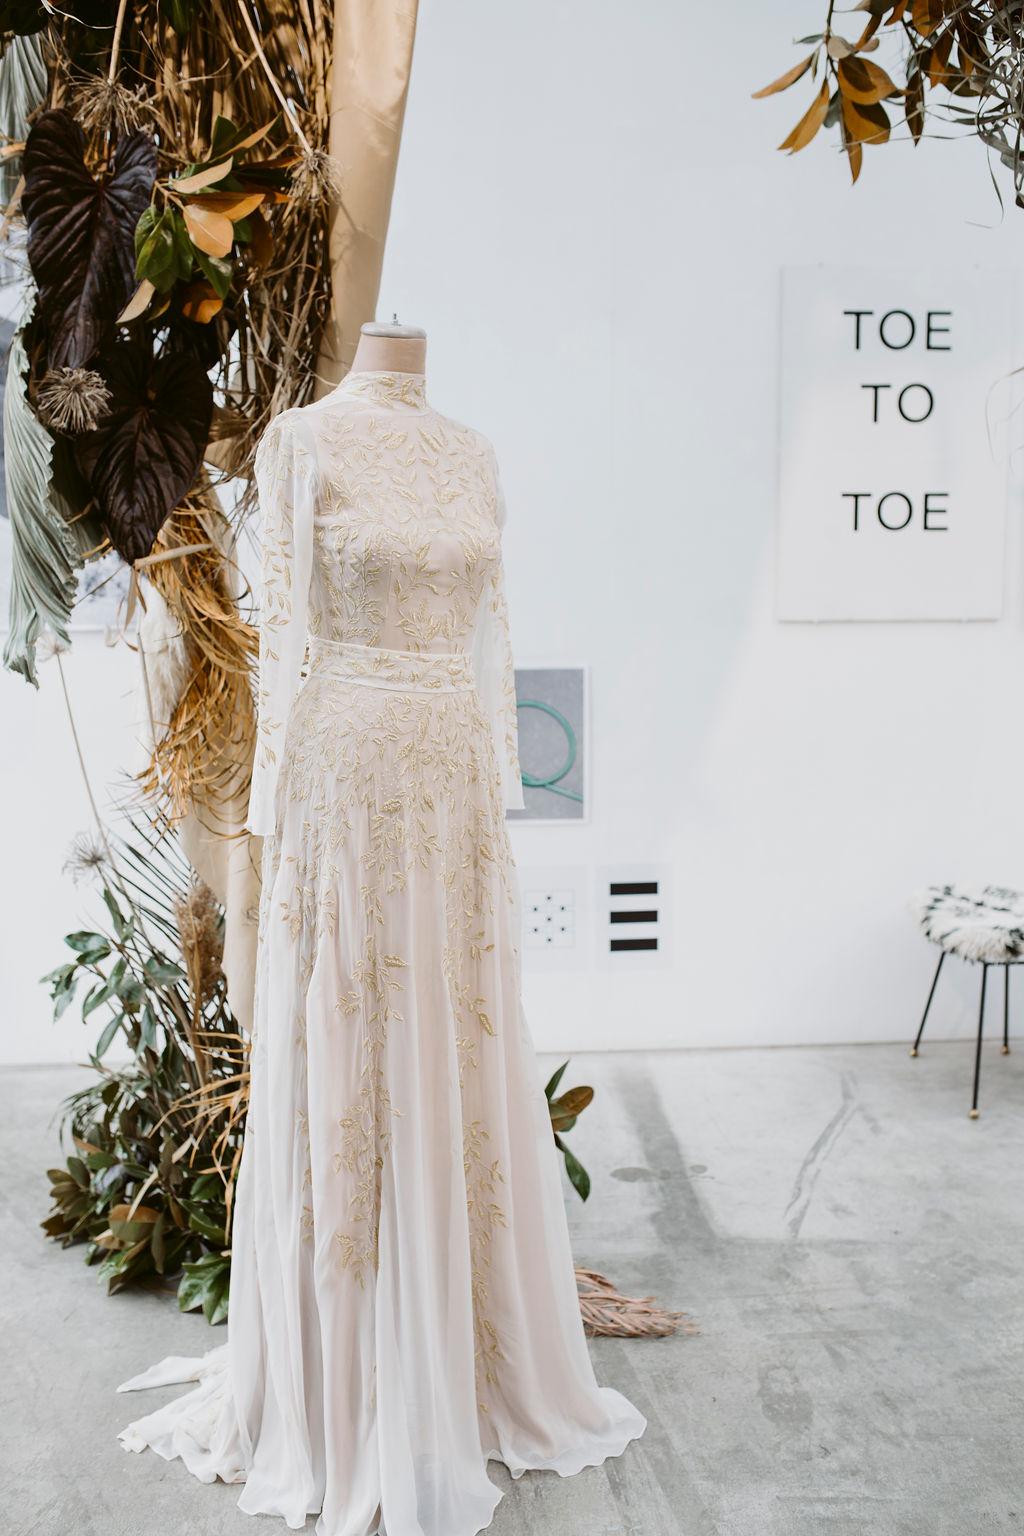 Mrs-Fray-canberra-bridal-pop-up-1-leto-bridal.jpg